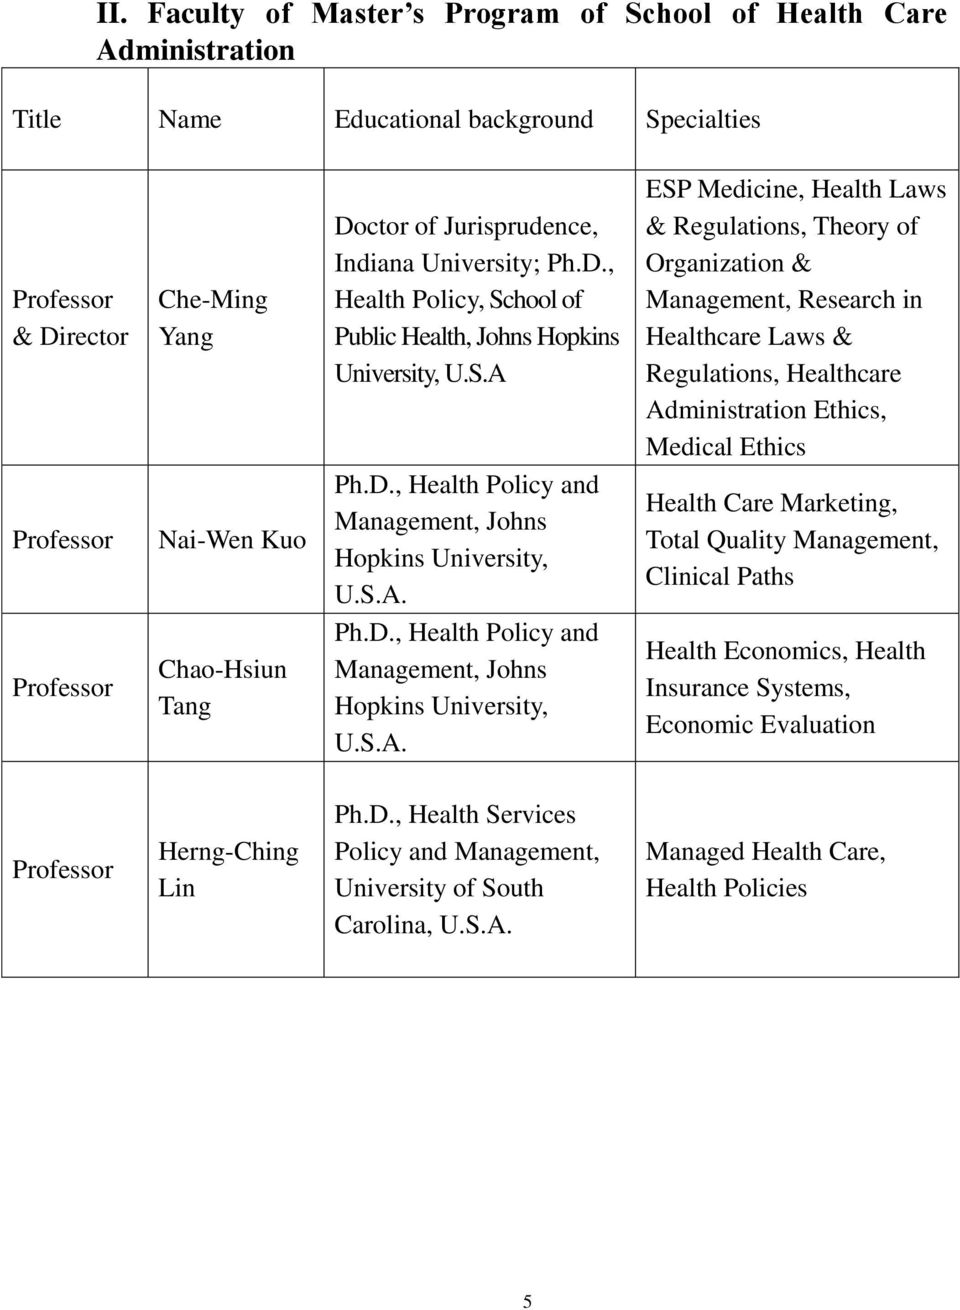 hool of Public Health, Johns Hopkins University, U.S.